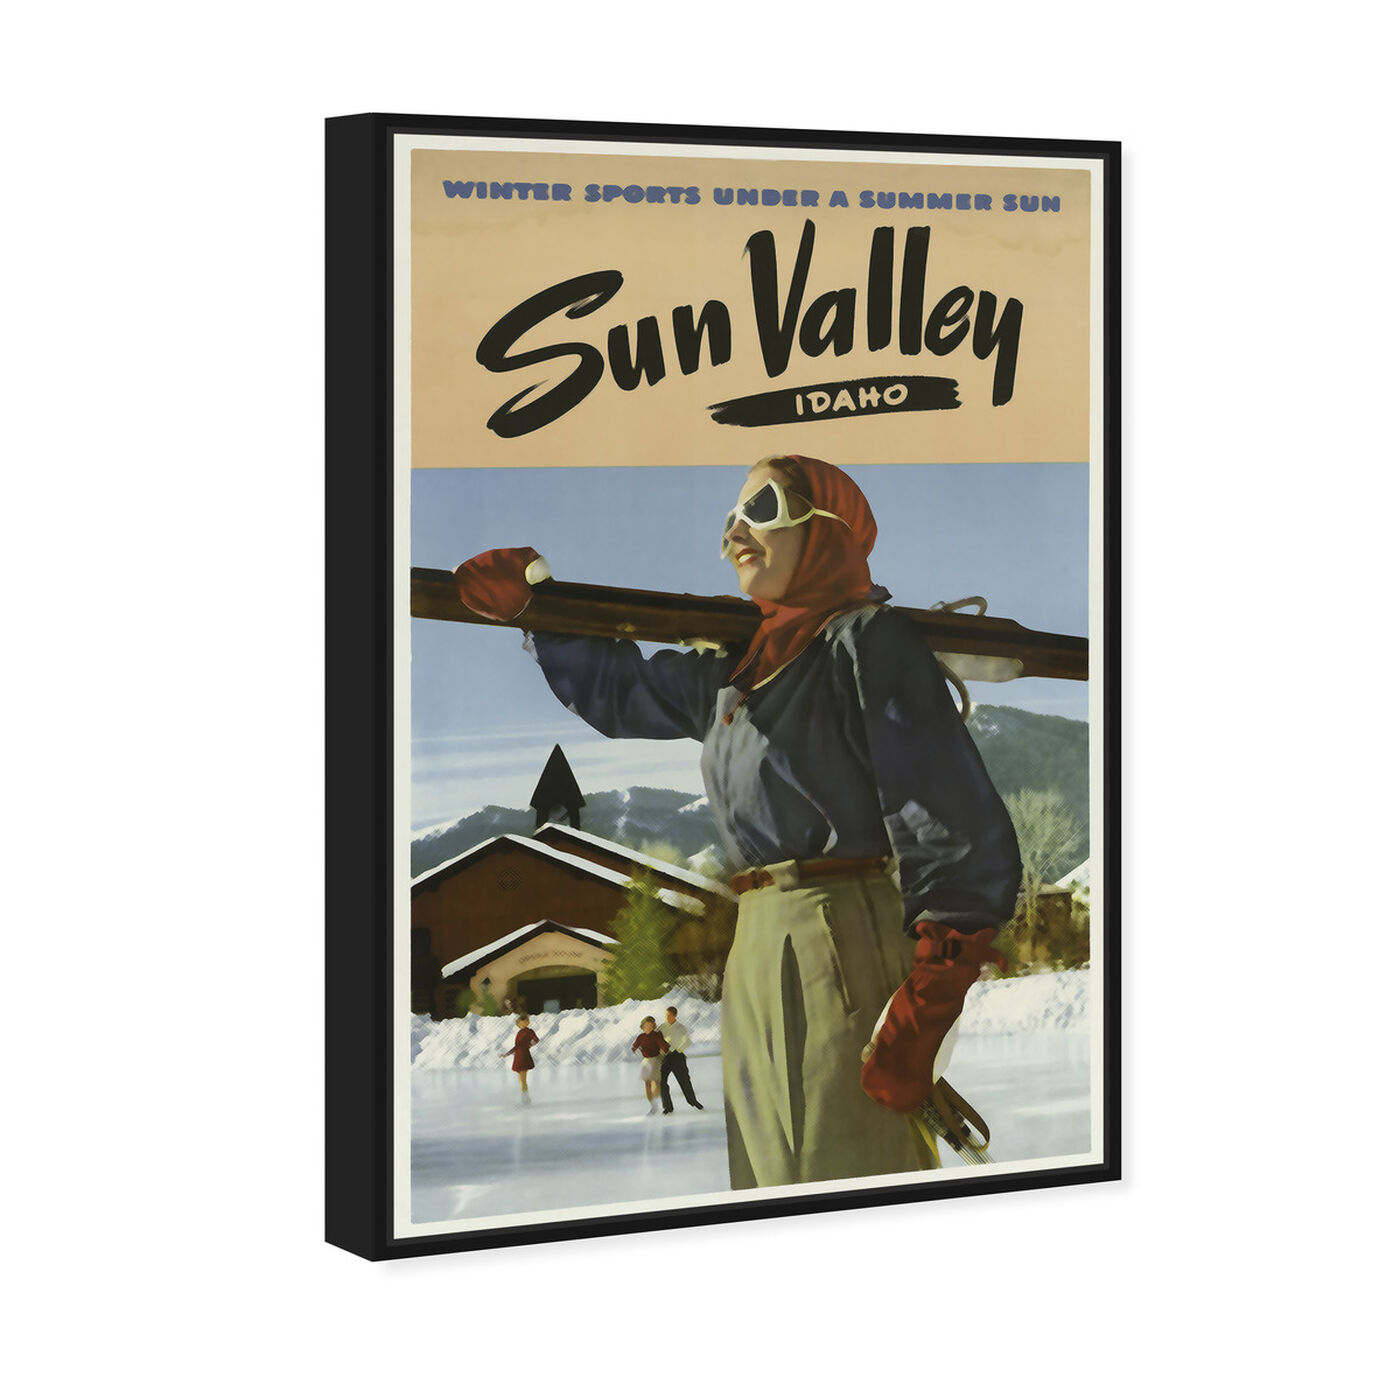 Angled view of Sun Valley featuring sports and teams and skiing art.